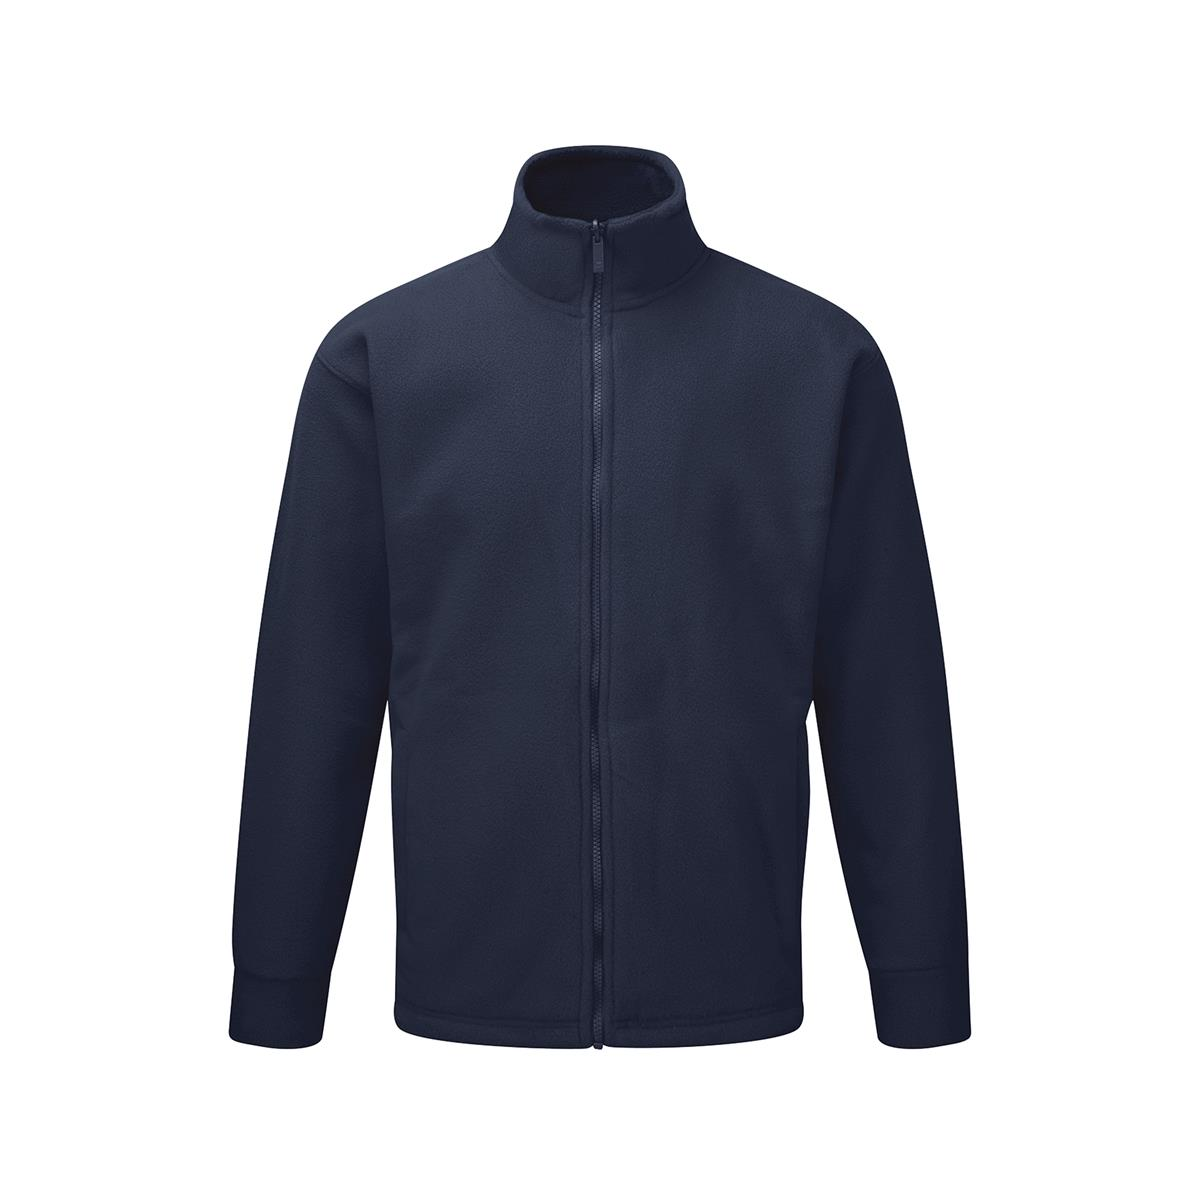 Image for Basic Fleece Jacket Elasticated Cuffs and Full Zip Front Large Navy 1-3 Days Lead Time